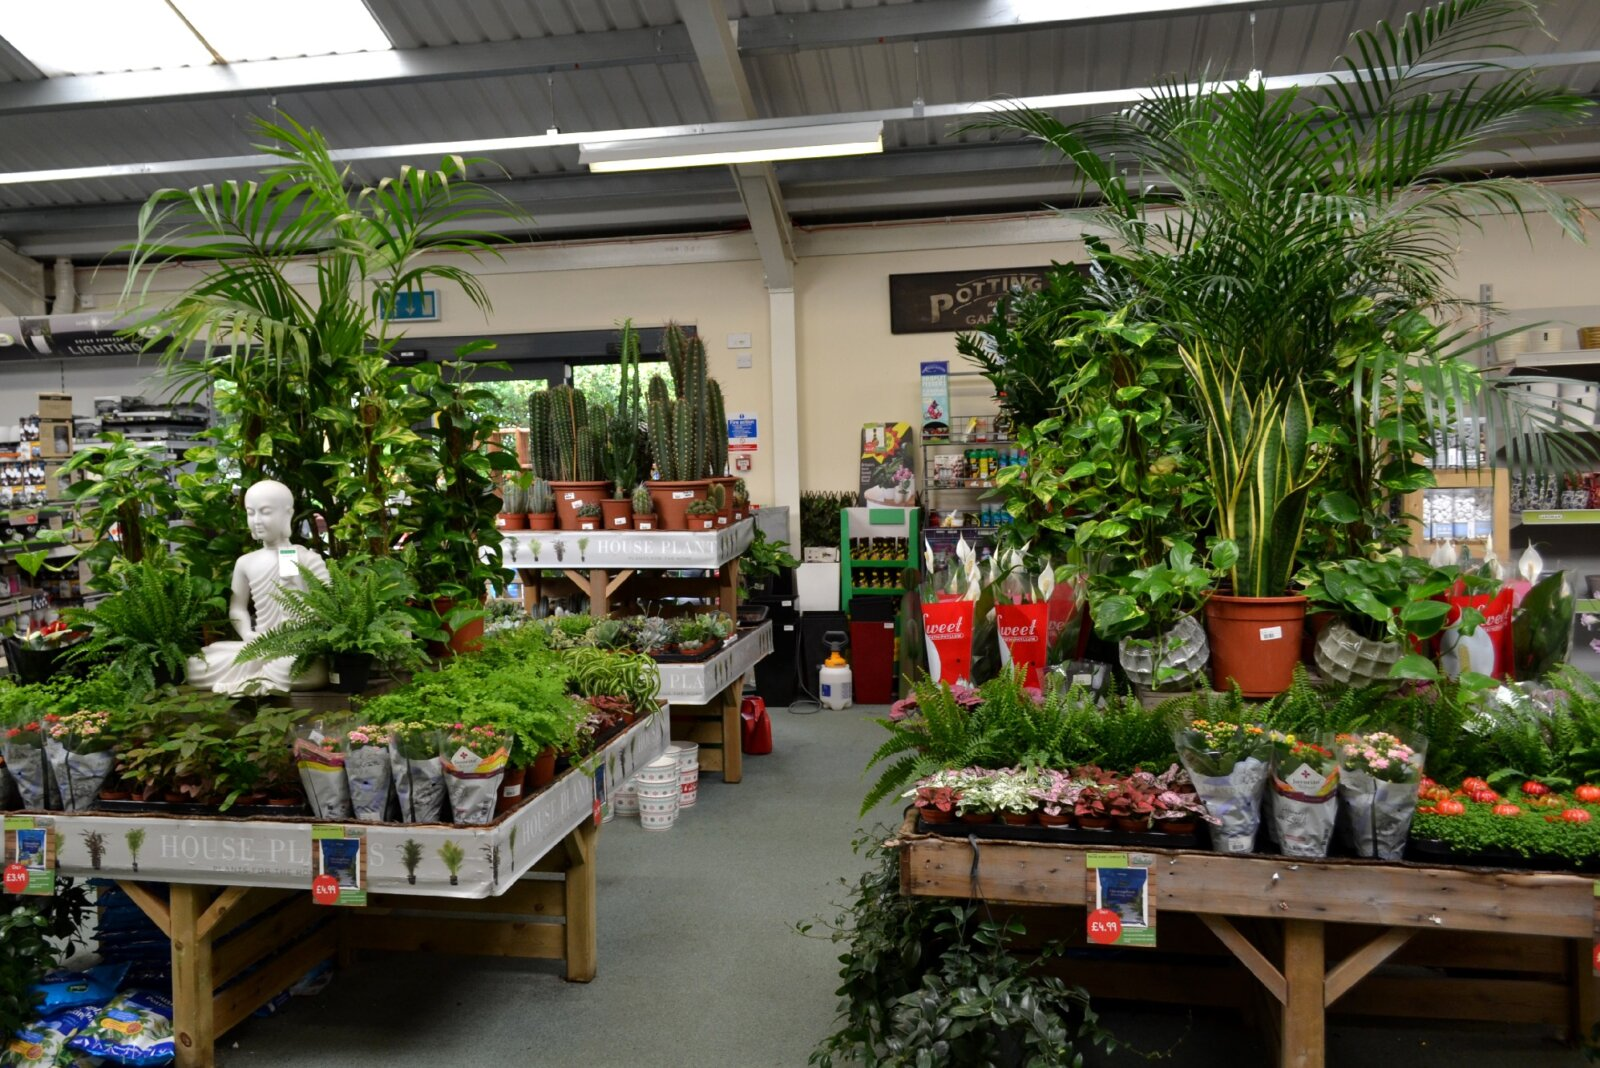 Garden centre in Trafford speaks out after experiencing 'abuse towards staff', The Manc